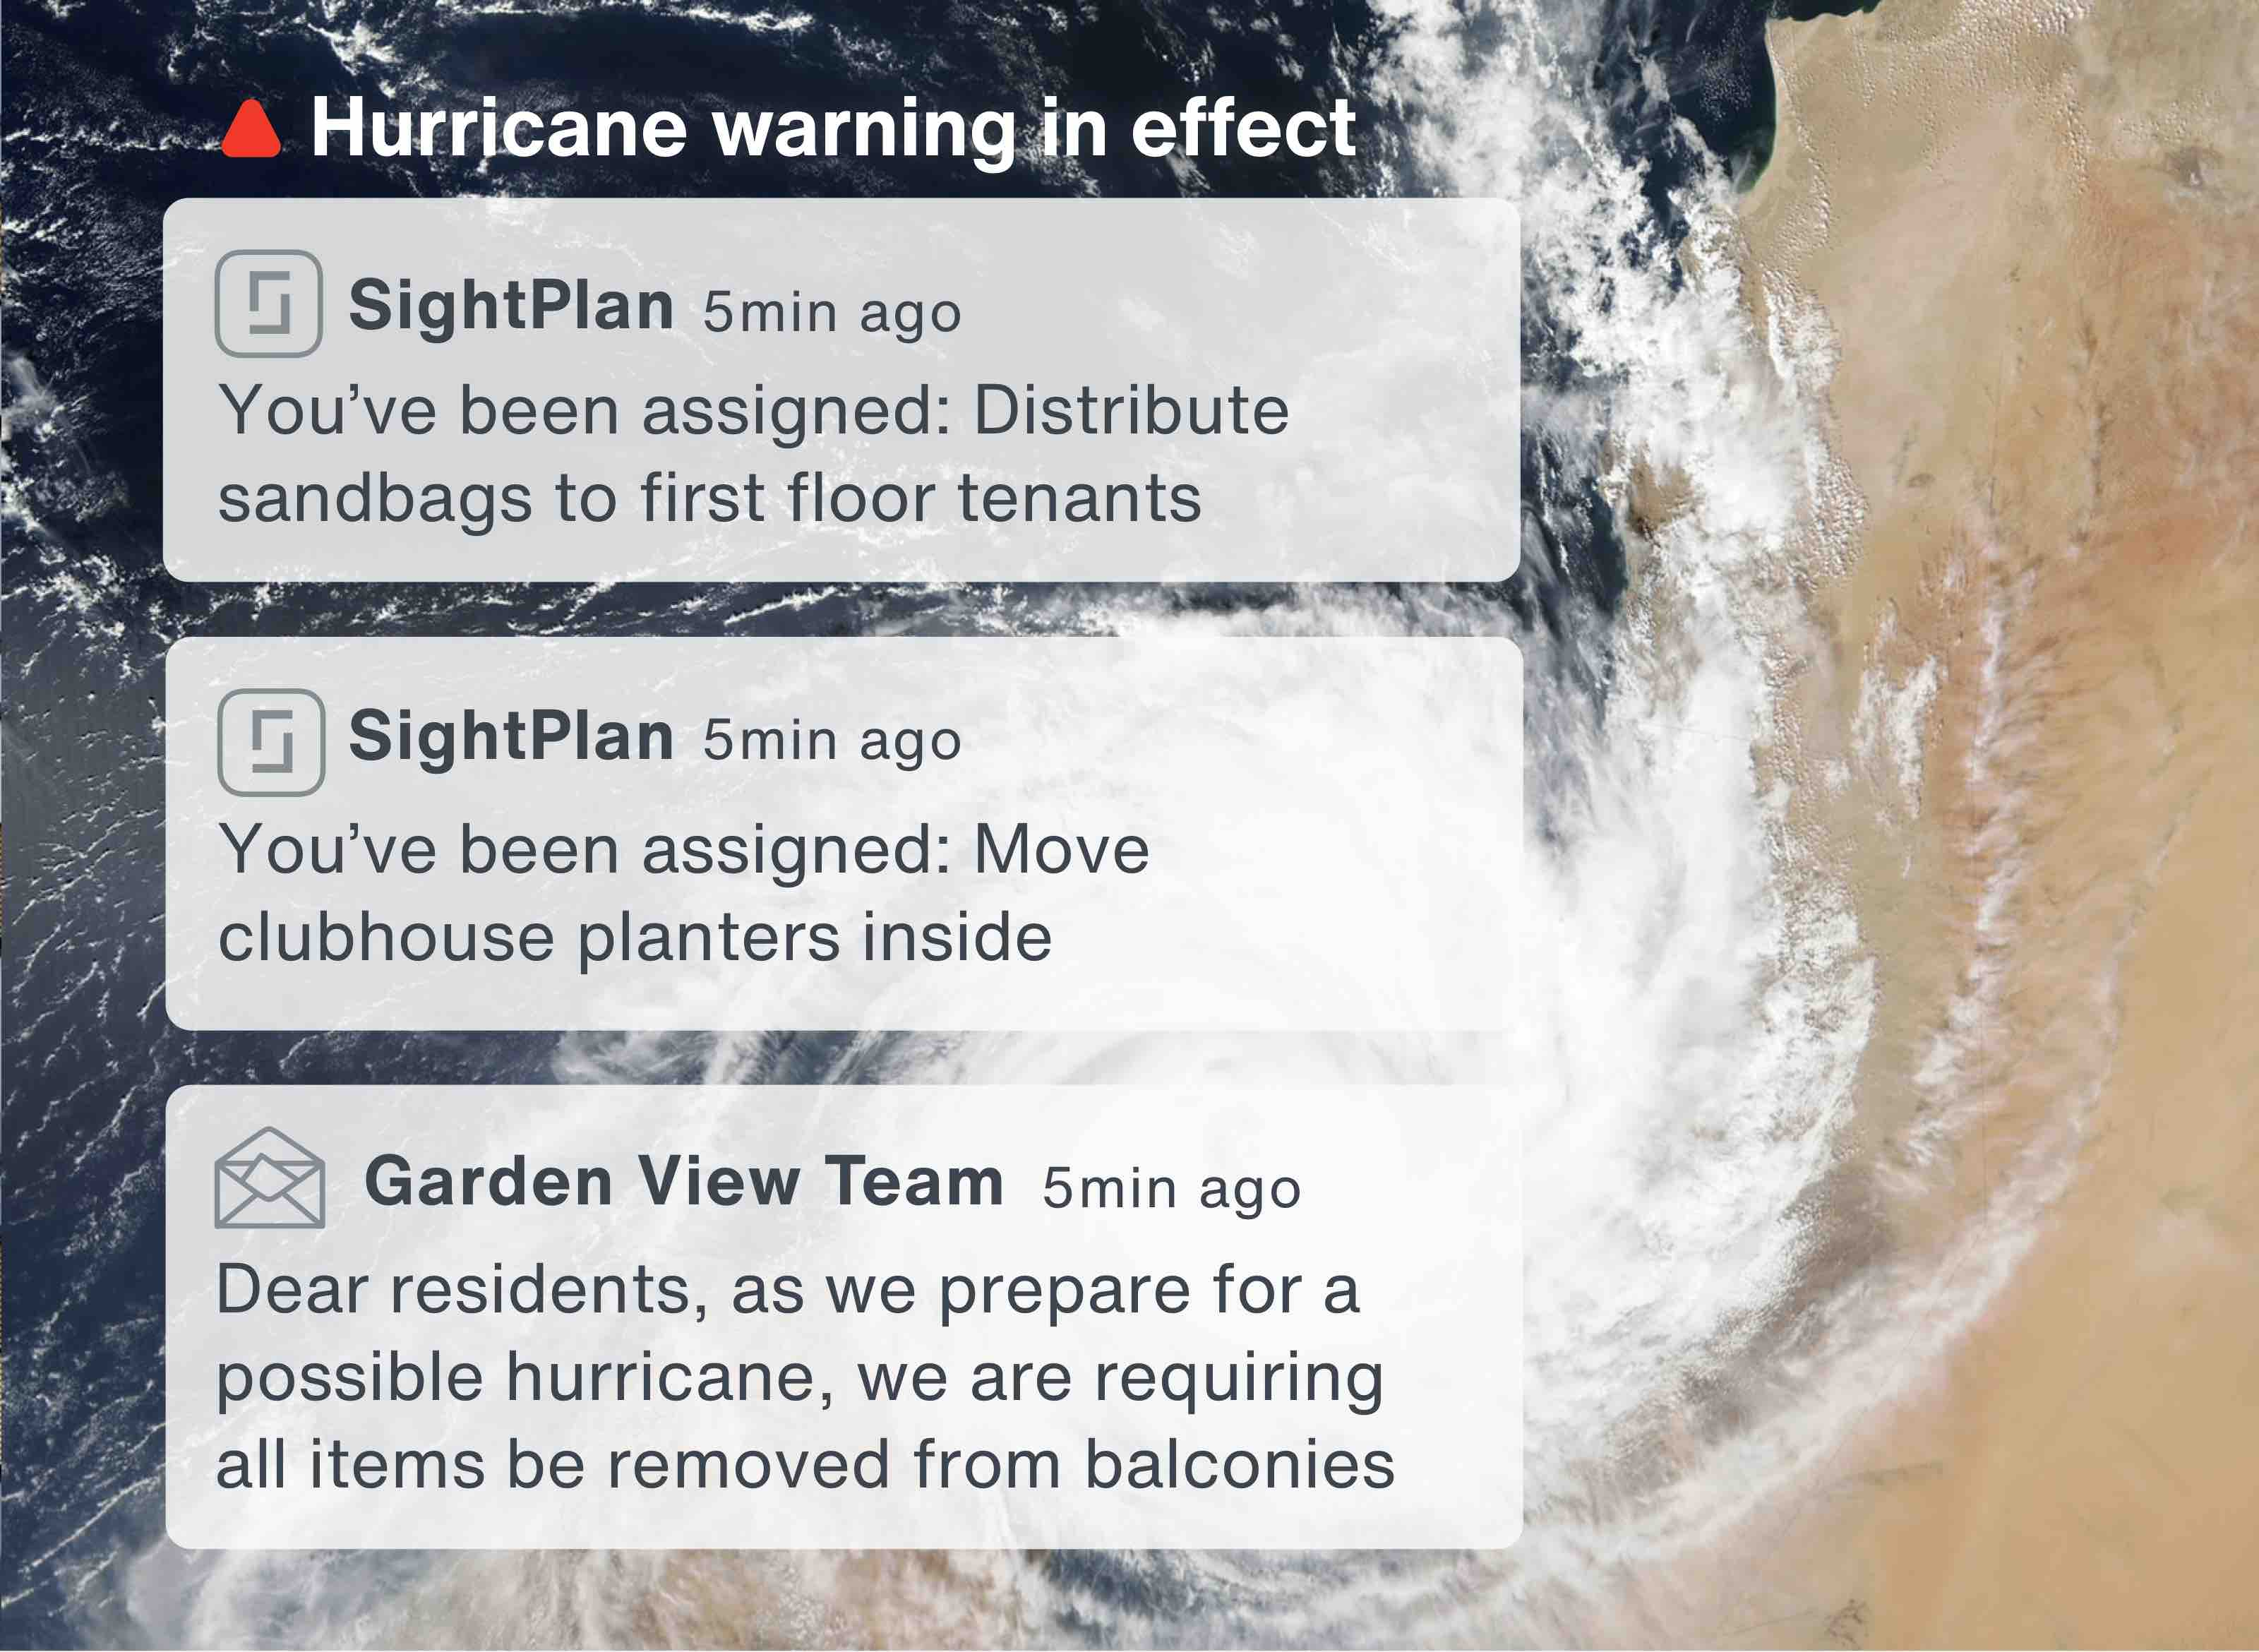 In-app alerts notifying the site team that there's a hurricane warning in effect and assigning tasks for storm prep